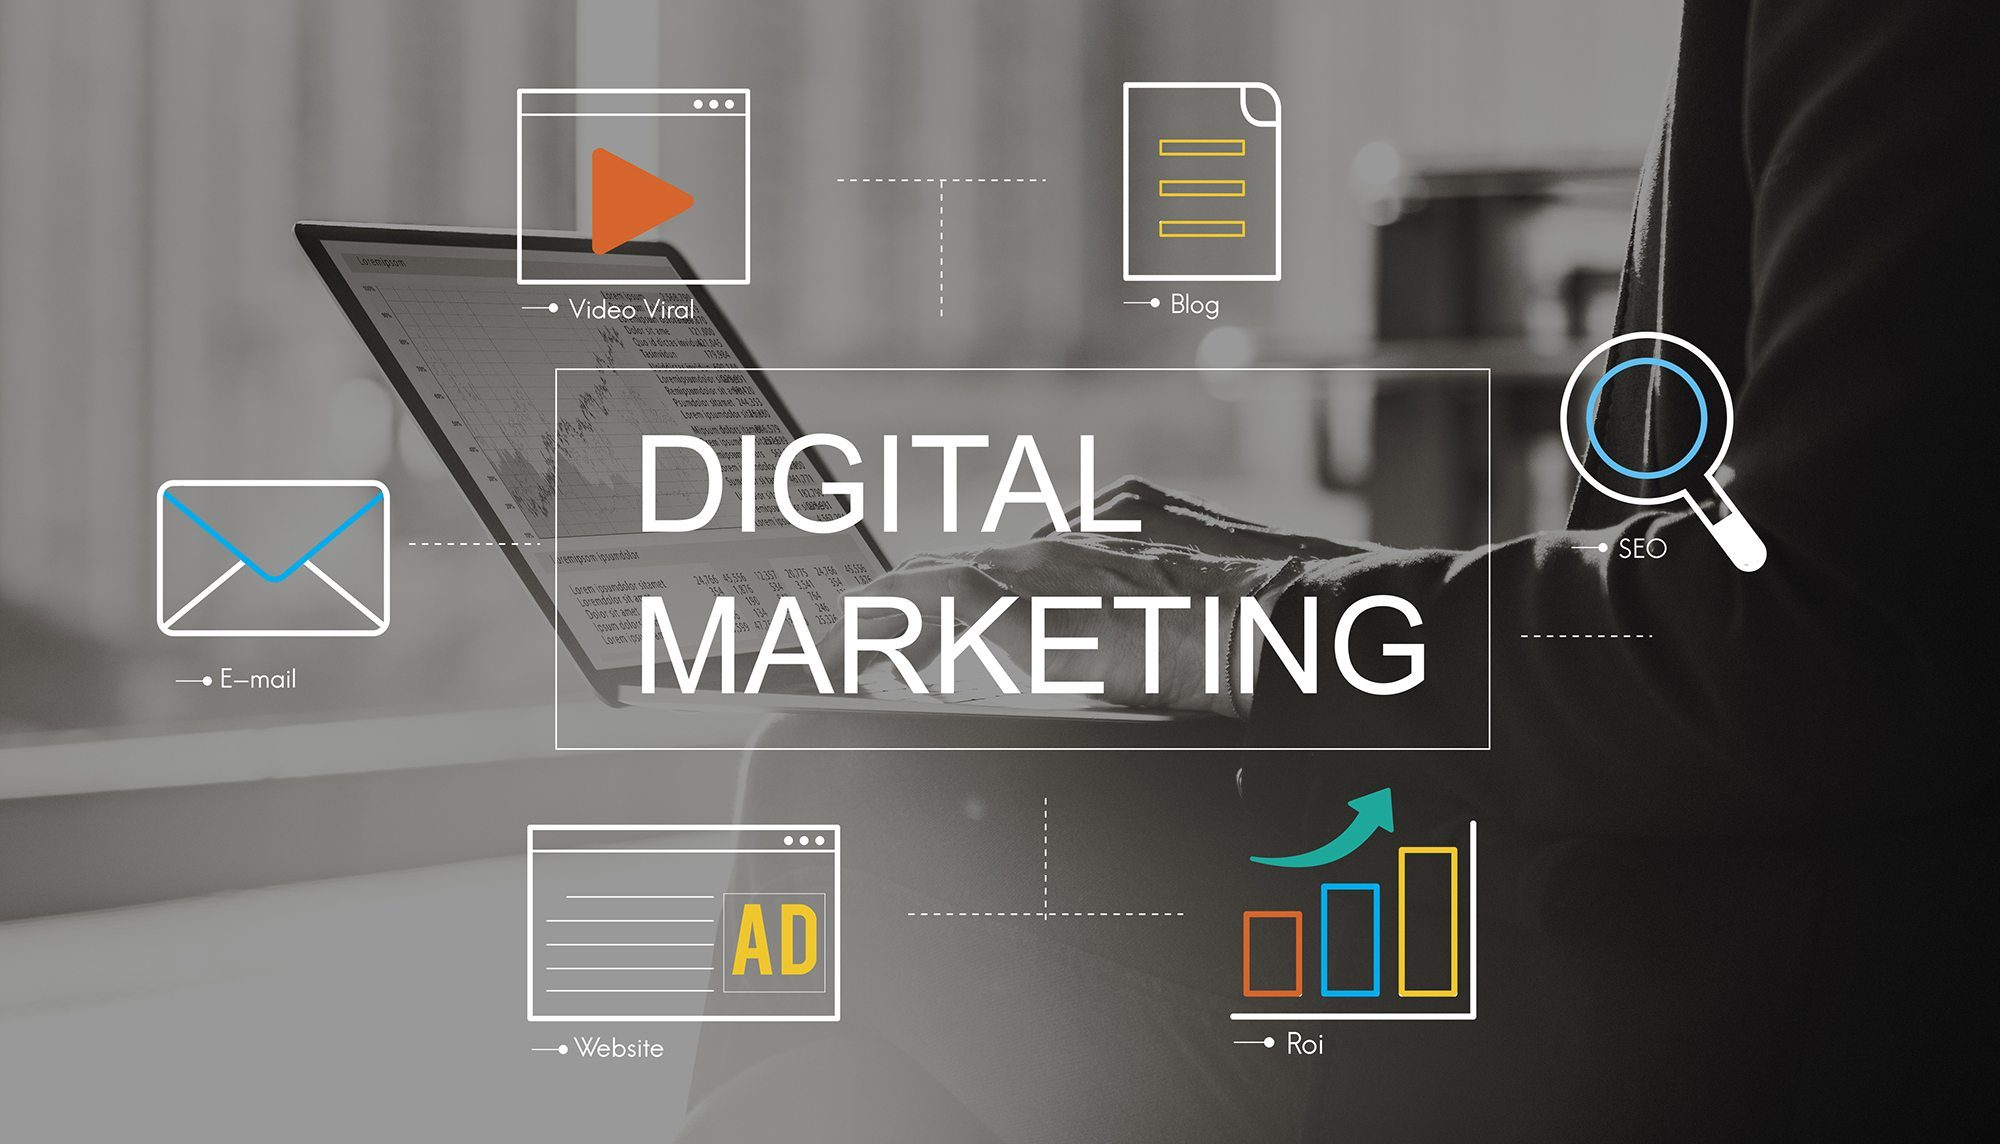 Digital Marketing Agency Melbourne Creating New Milestones